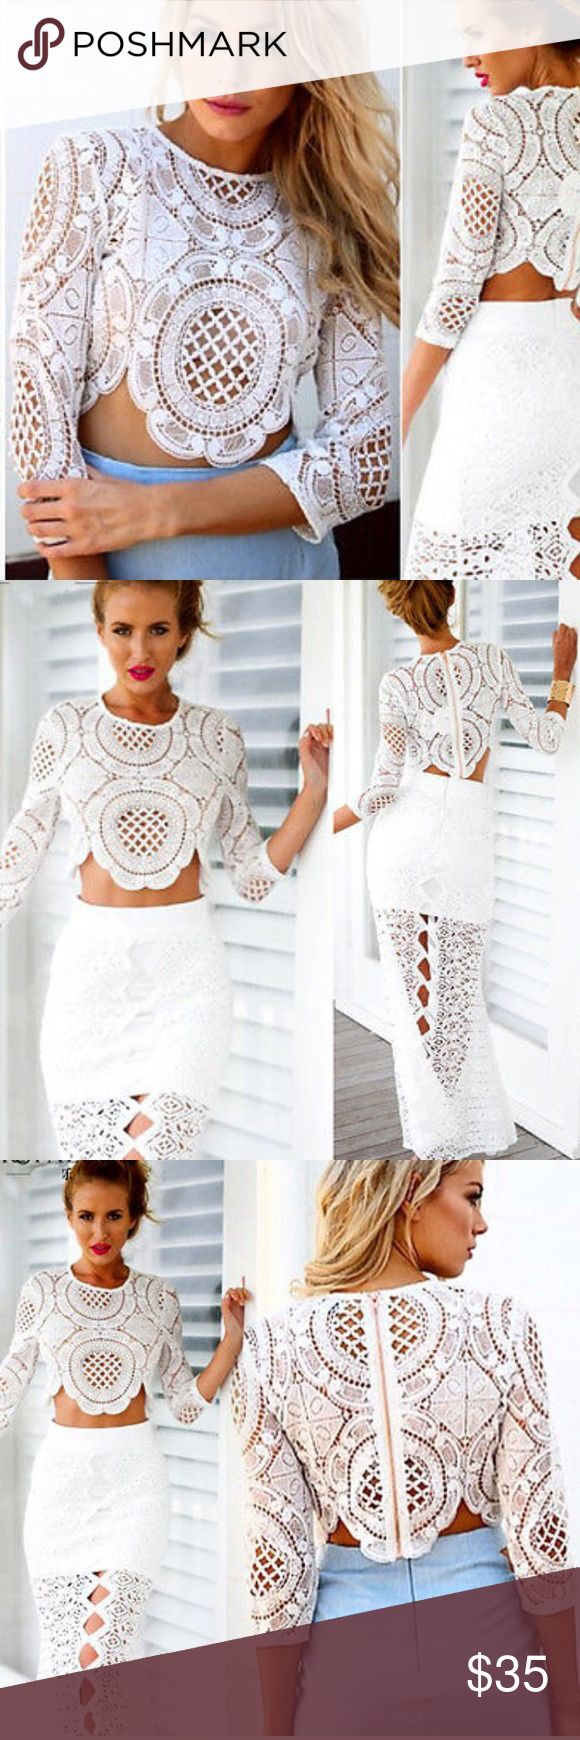 """New! """"Paula"""" 